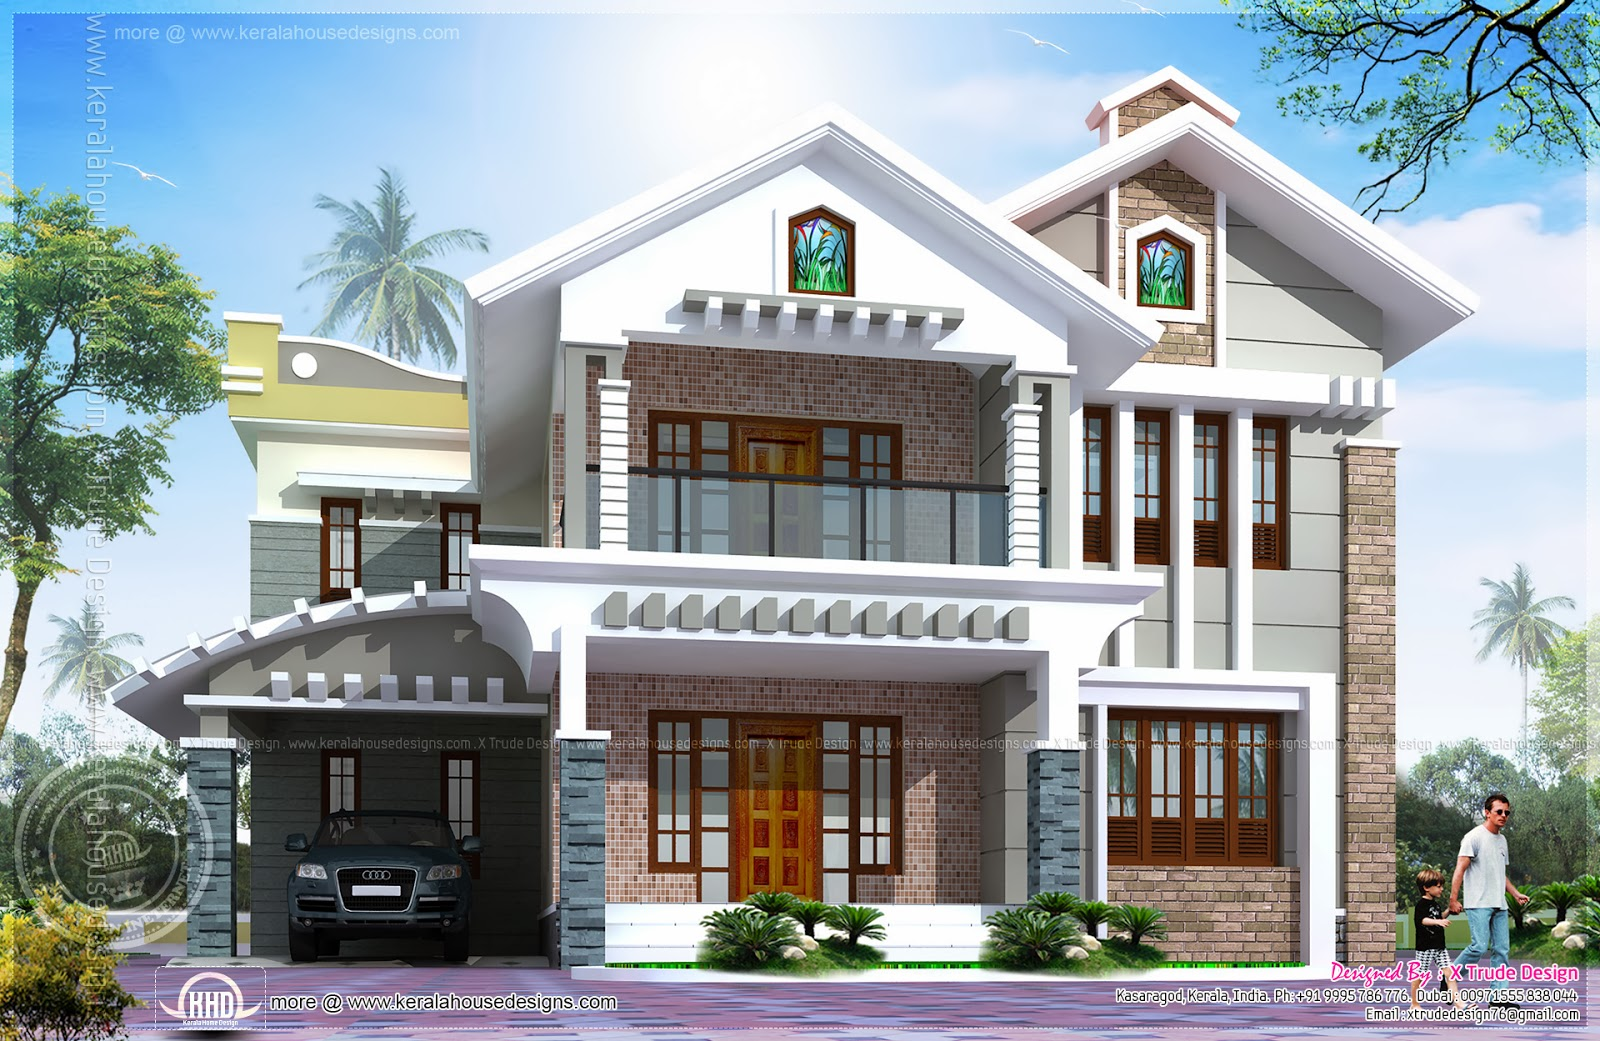 3080 square feet luxury villa exterior Kerala home design and floor plans